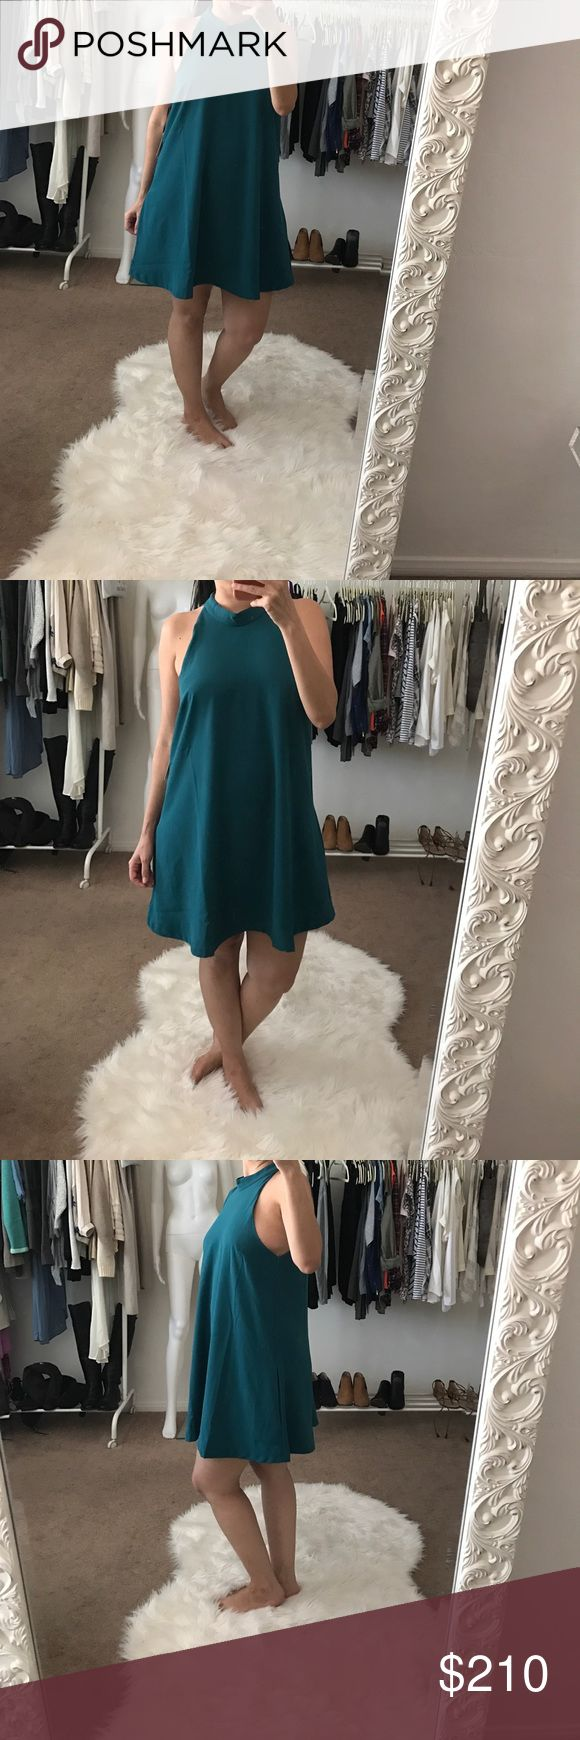 Lovers + Friends Teal A-Line Pocket Dress Lovers + Friends Teal A-Line Pocket Dress.  What's not to love about pockets on dresses? Love this gorgeous teal color.  Lined, keyhole detail back with button, super chic, makes a great cocktail dress. Lovers + Friends Dresses